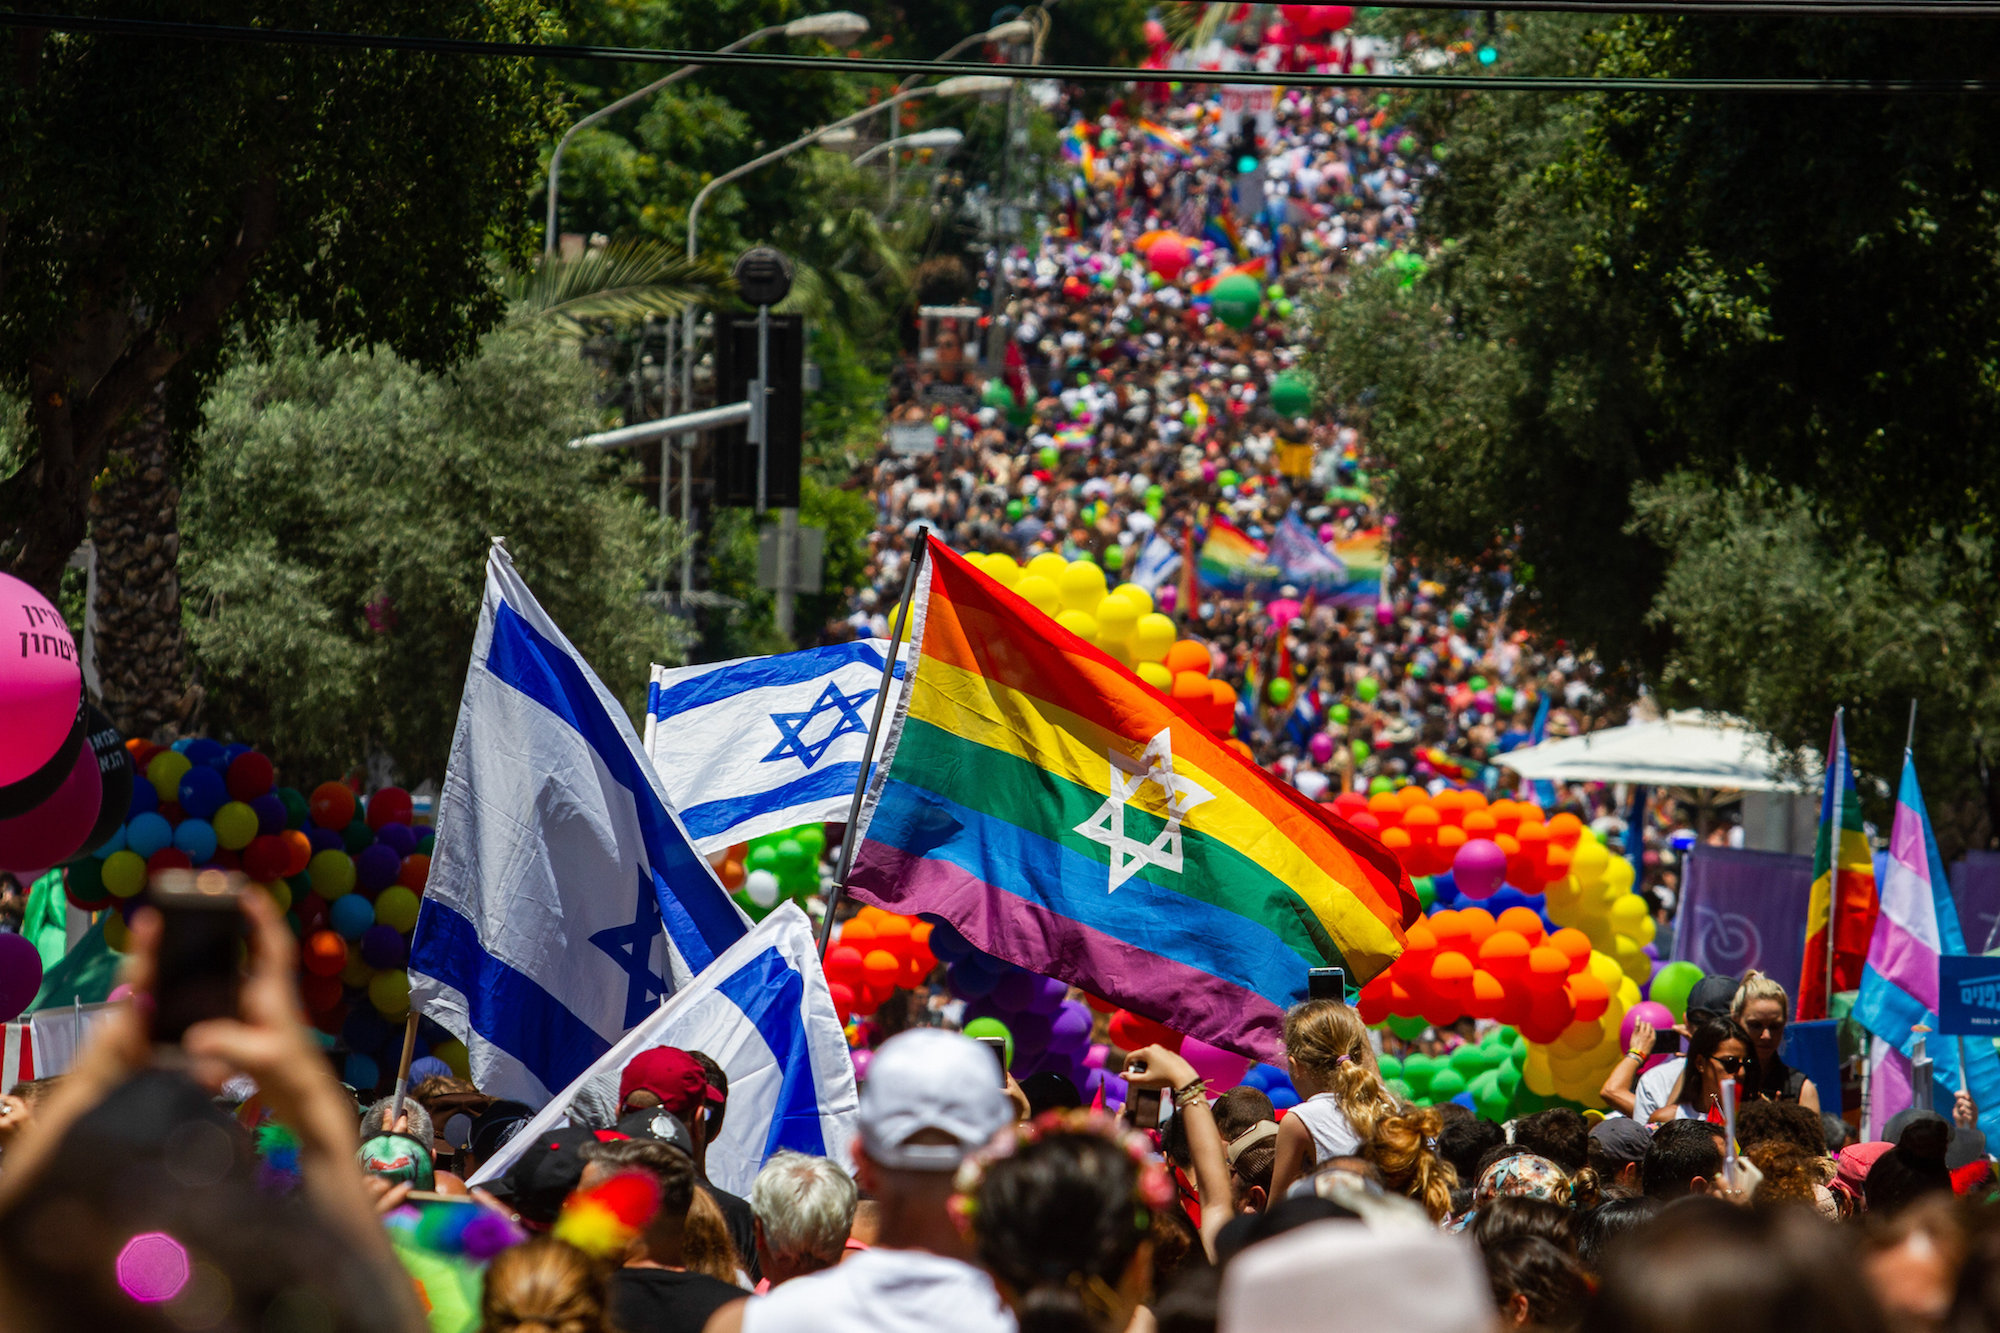 Tens of thousands participate in Tel Aviv's annual Pride Parade, June 14, 2019. (Flash90)